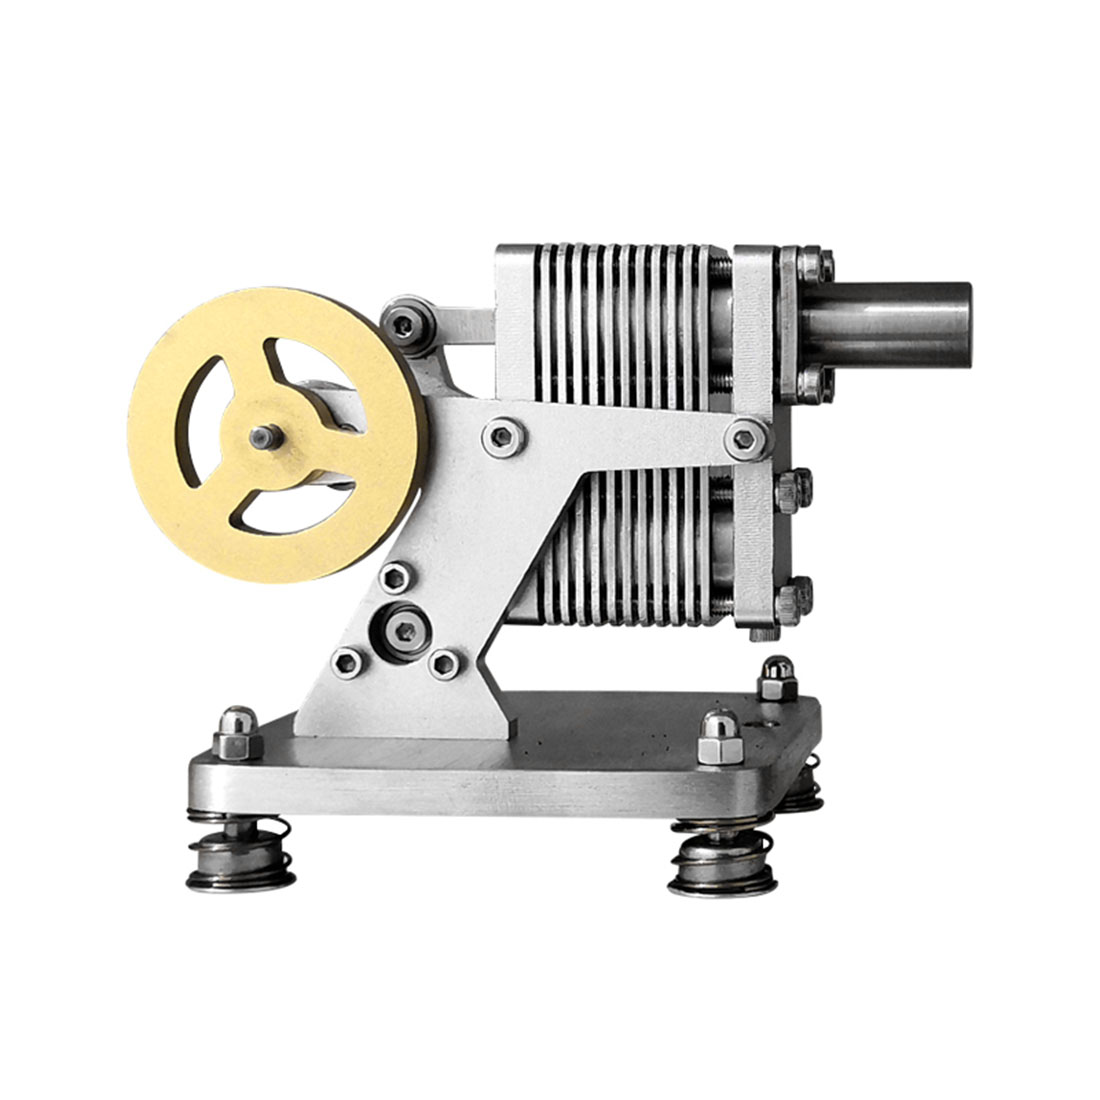 Full Metal Stirling Engine Model Mini Generator Model Steam Science Educational Engine Toy Model Building Kit 2020 New Arrival